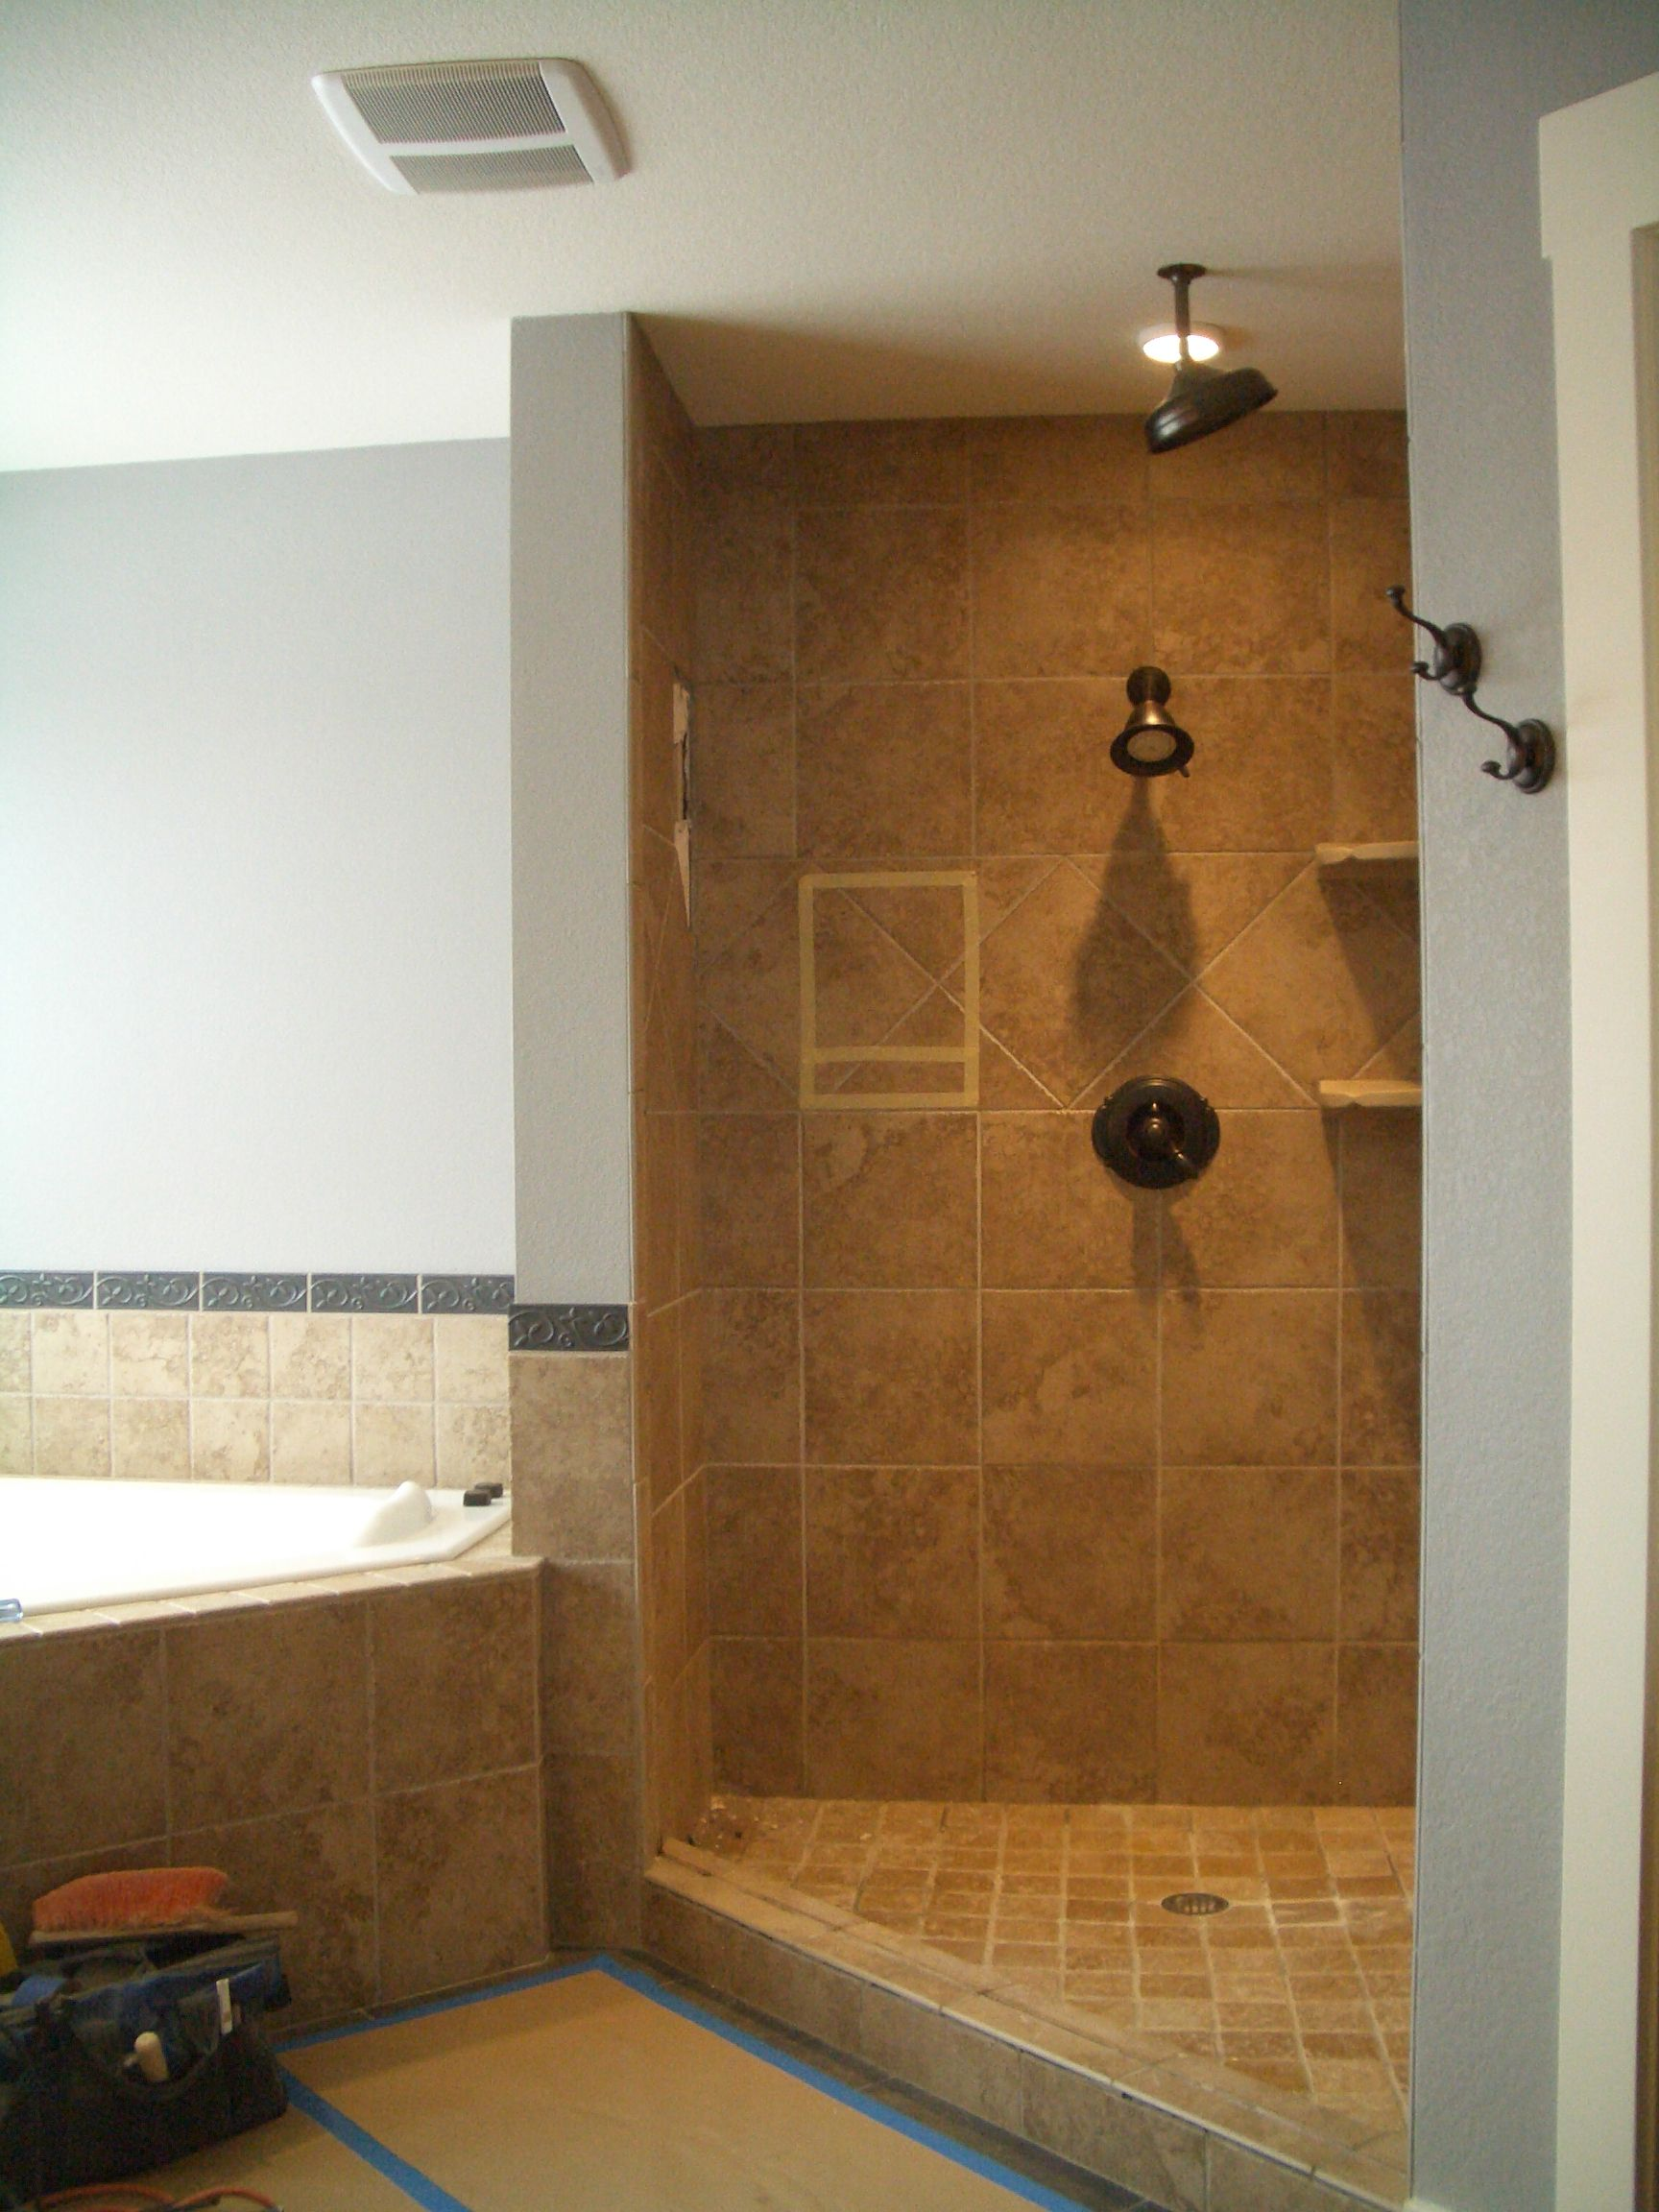 Small Bathroom No Shower Door bathroom shower remodel cost | ideas | pinterest | bathroom shower